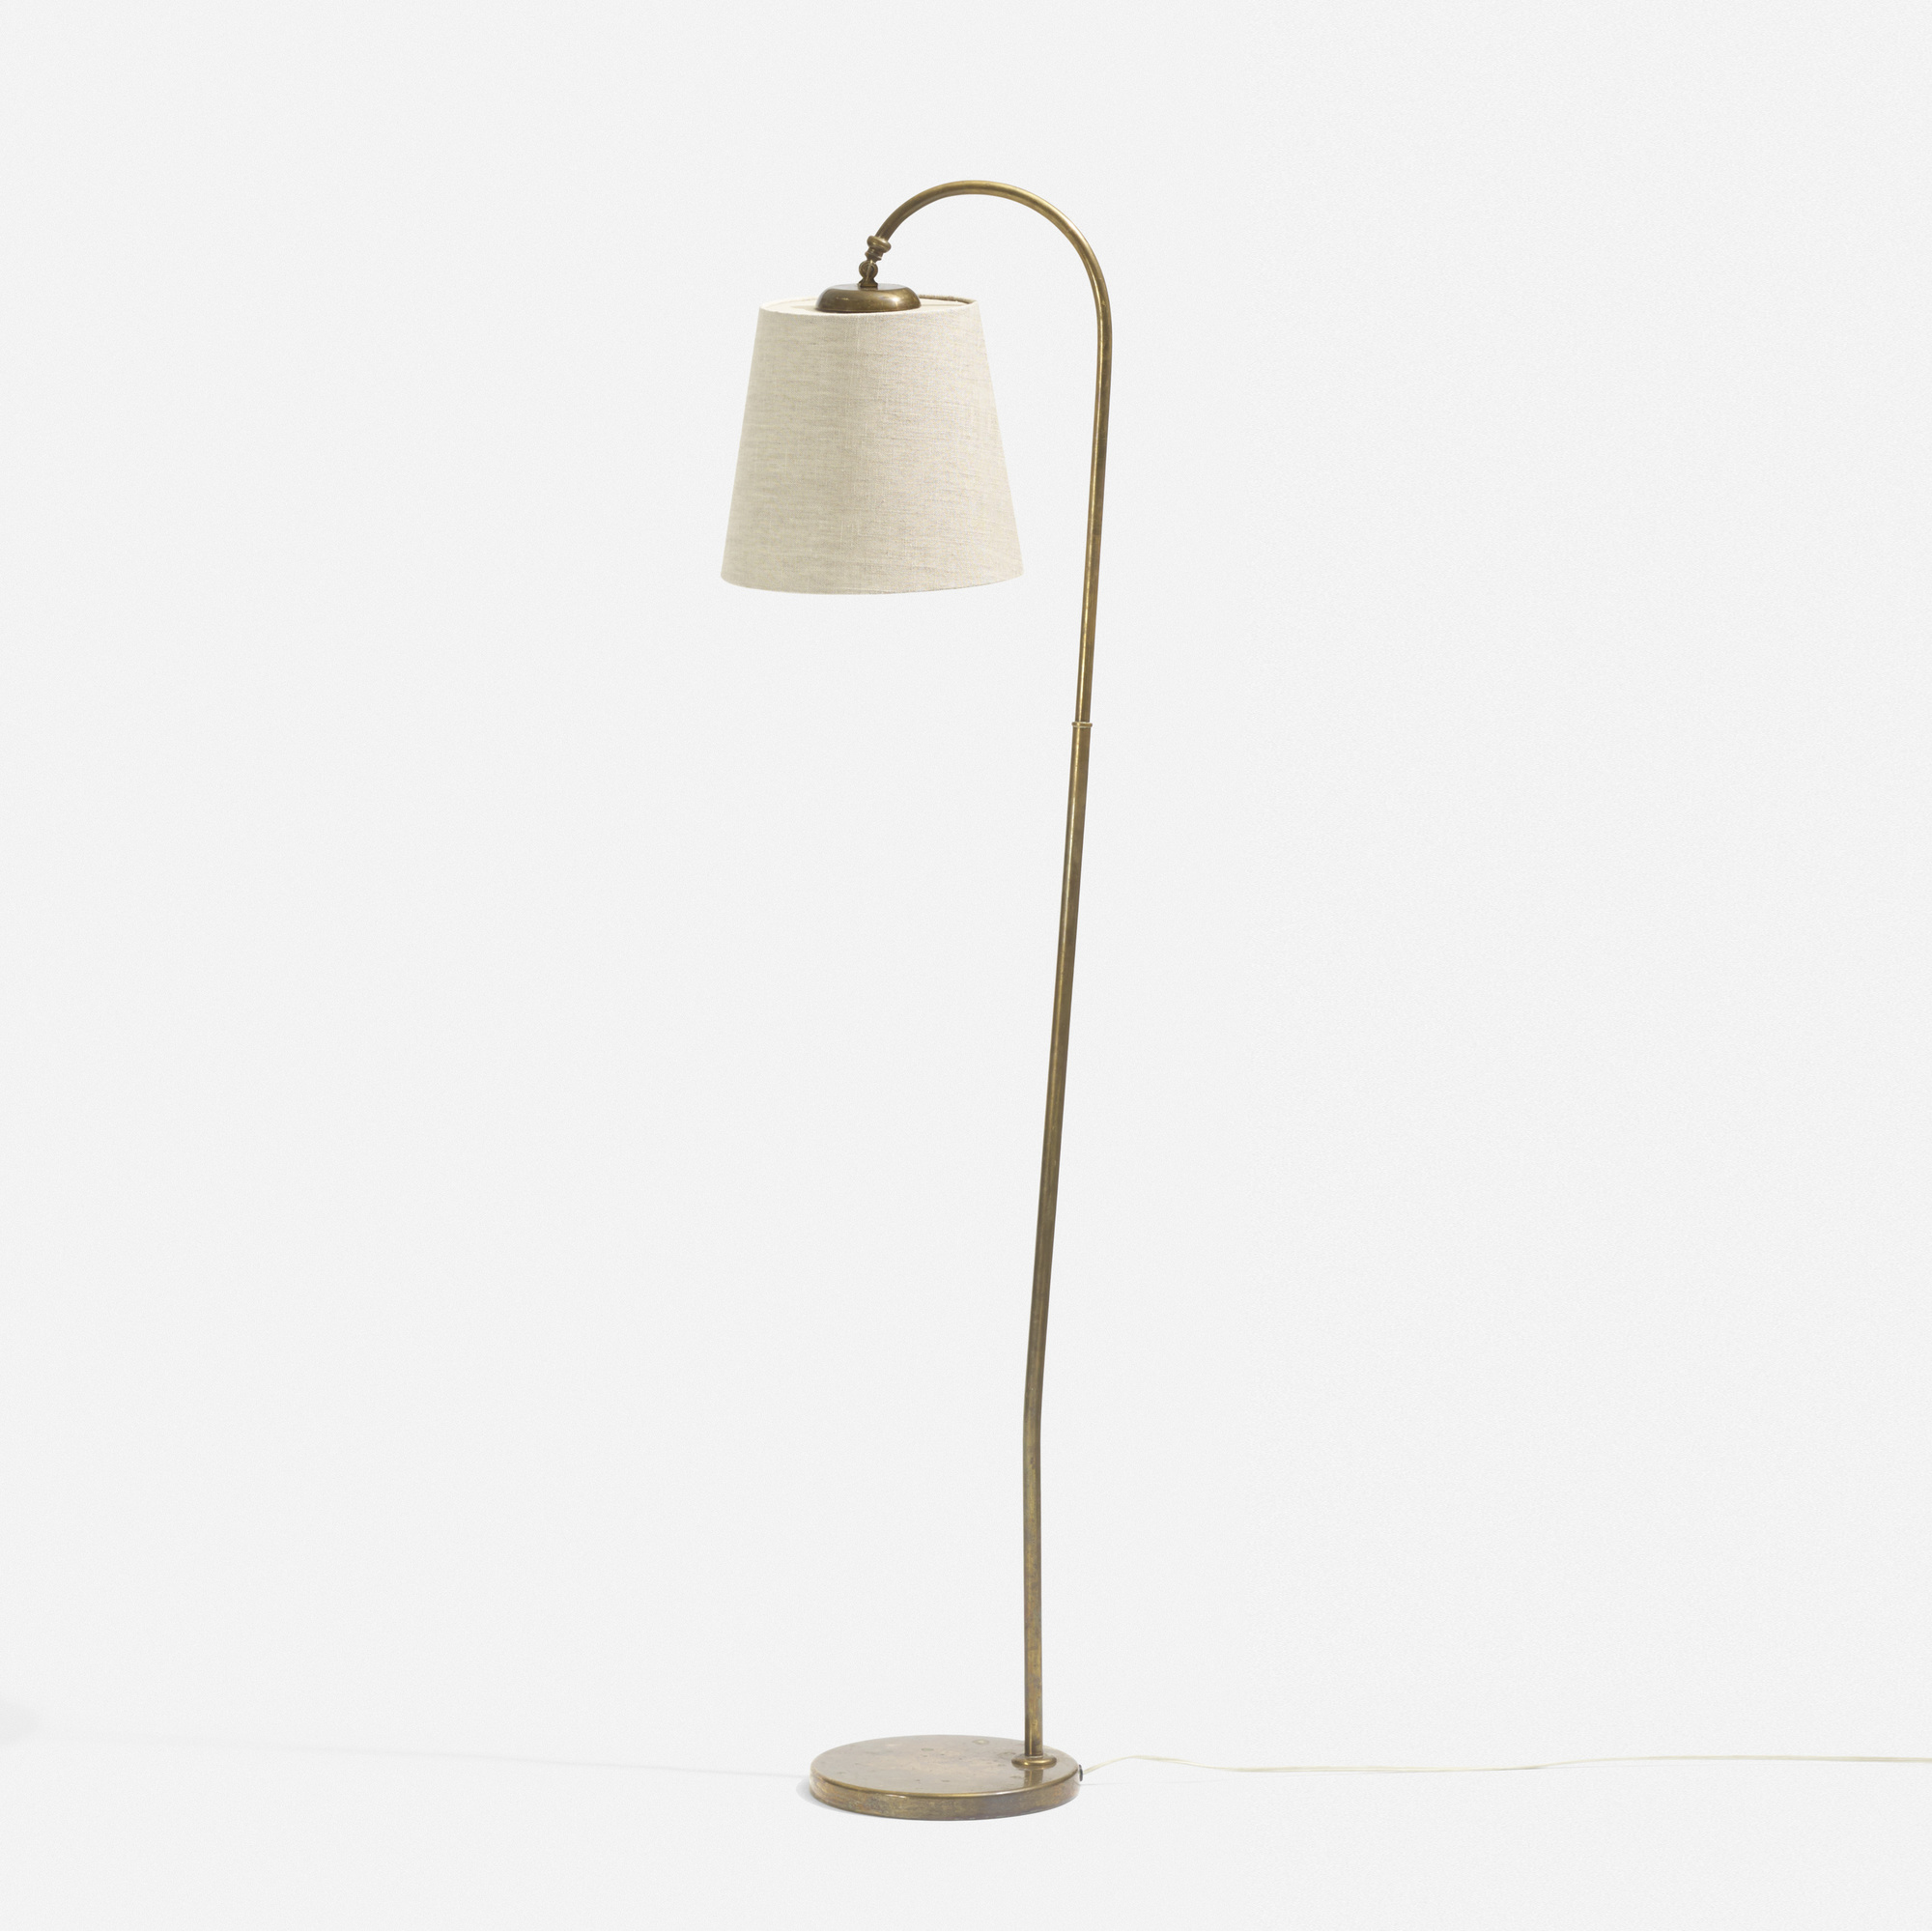 209: Paavo Tynell / floor lamp (1 of 1)